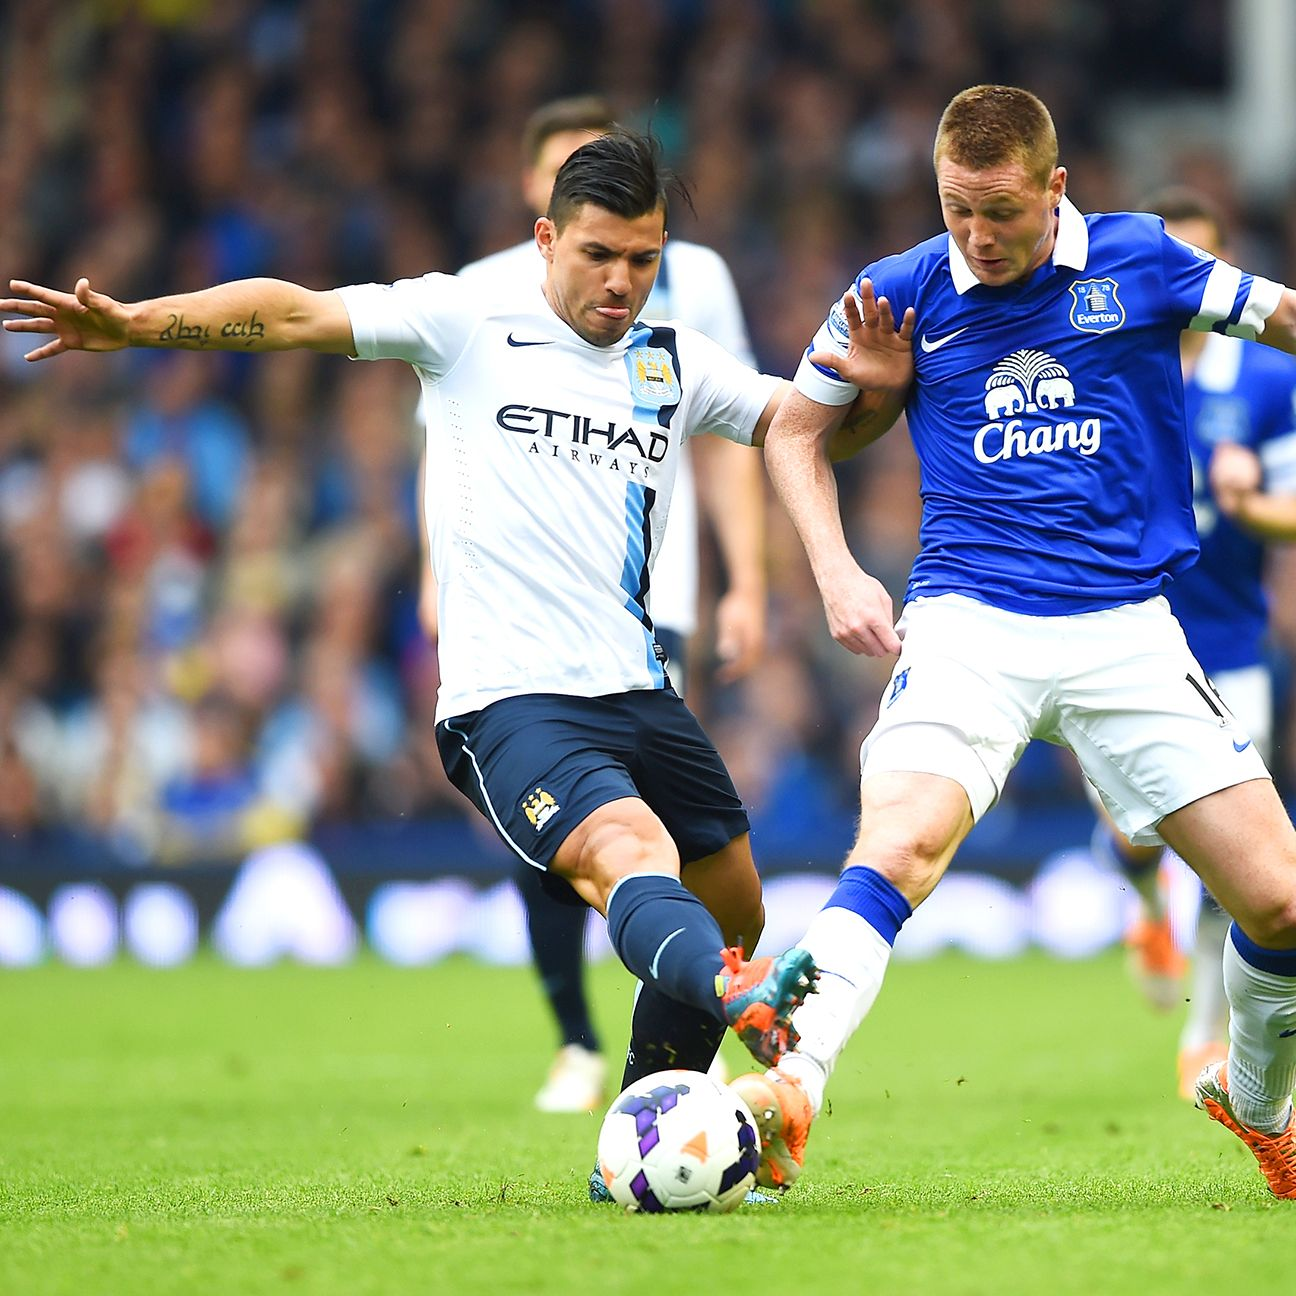 With James McCarthy out, Everton will need others to step up to help contain Sergio Aguero.